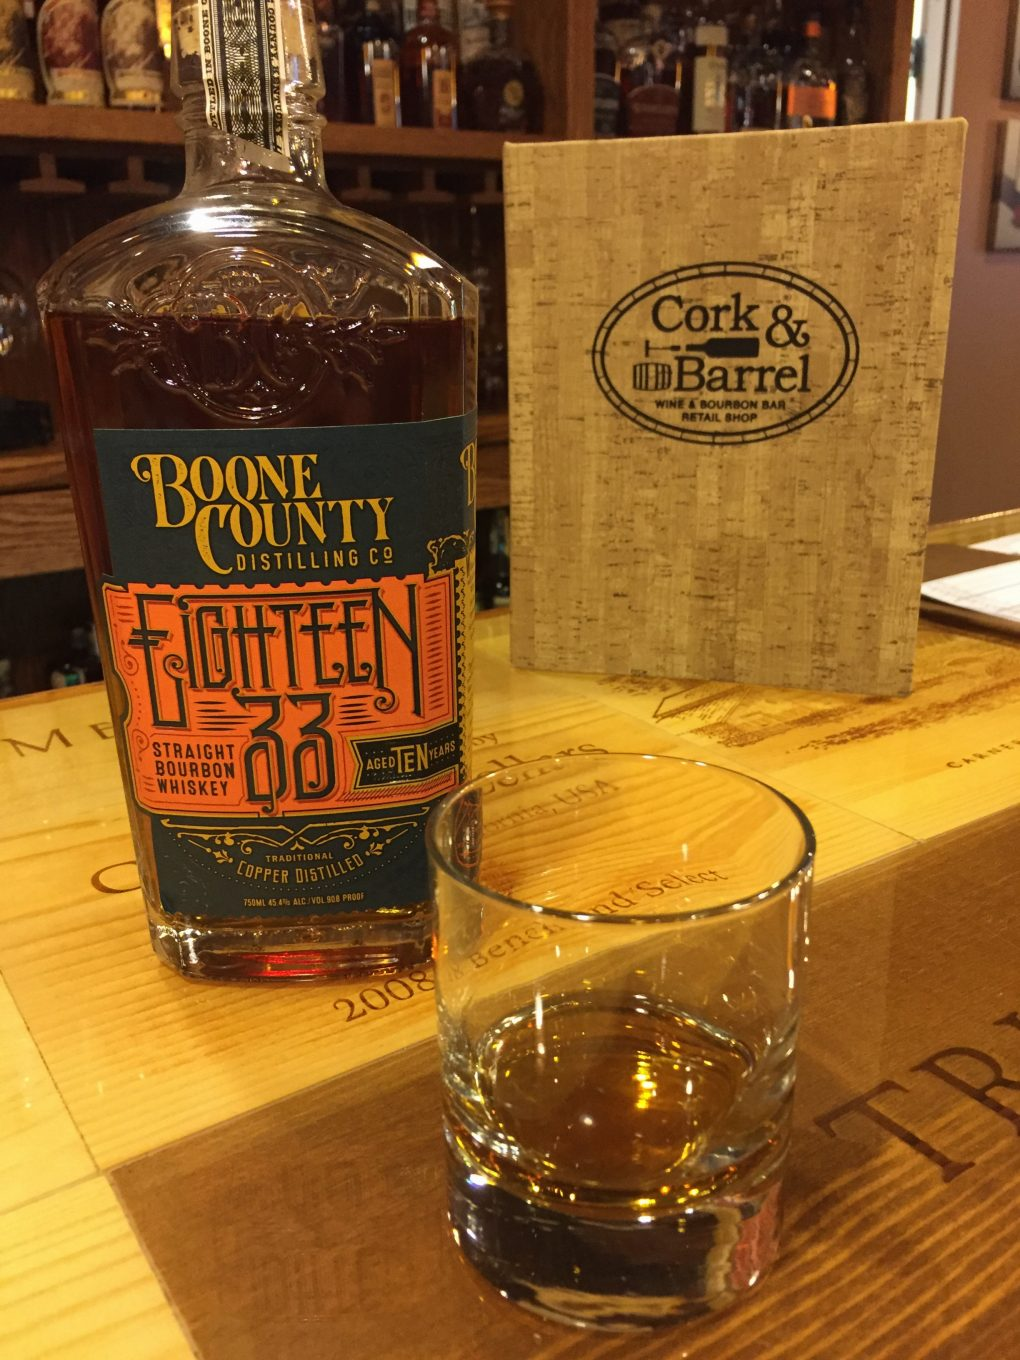 Eighteen 33 Straight Bourbon Whiskey